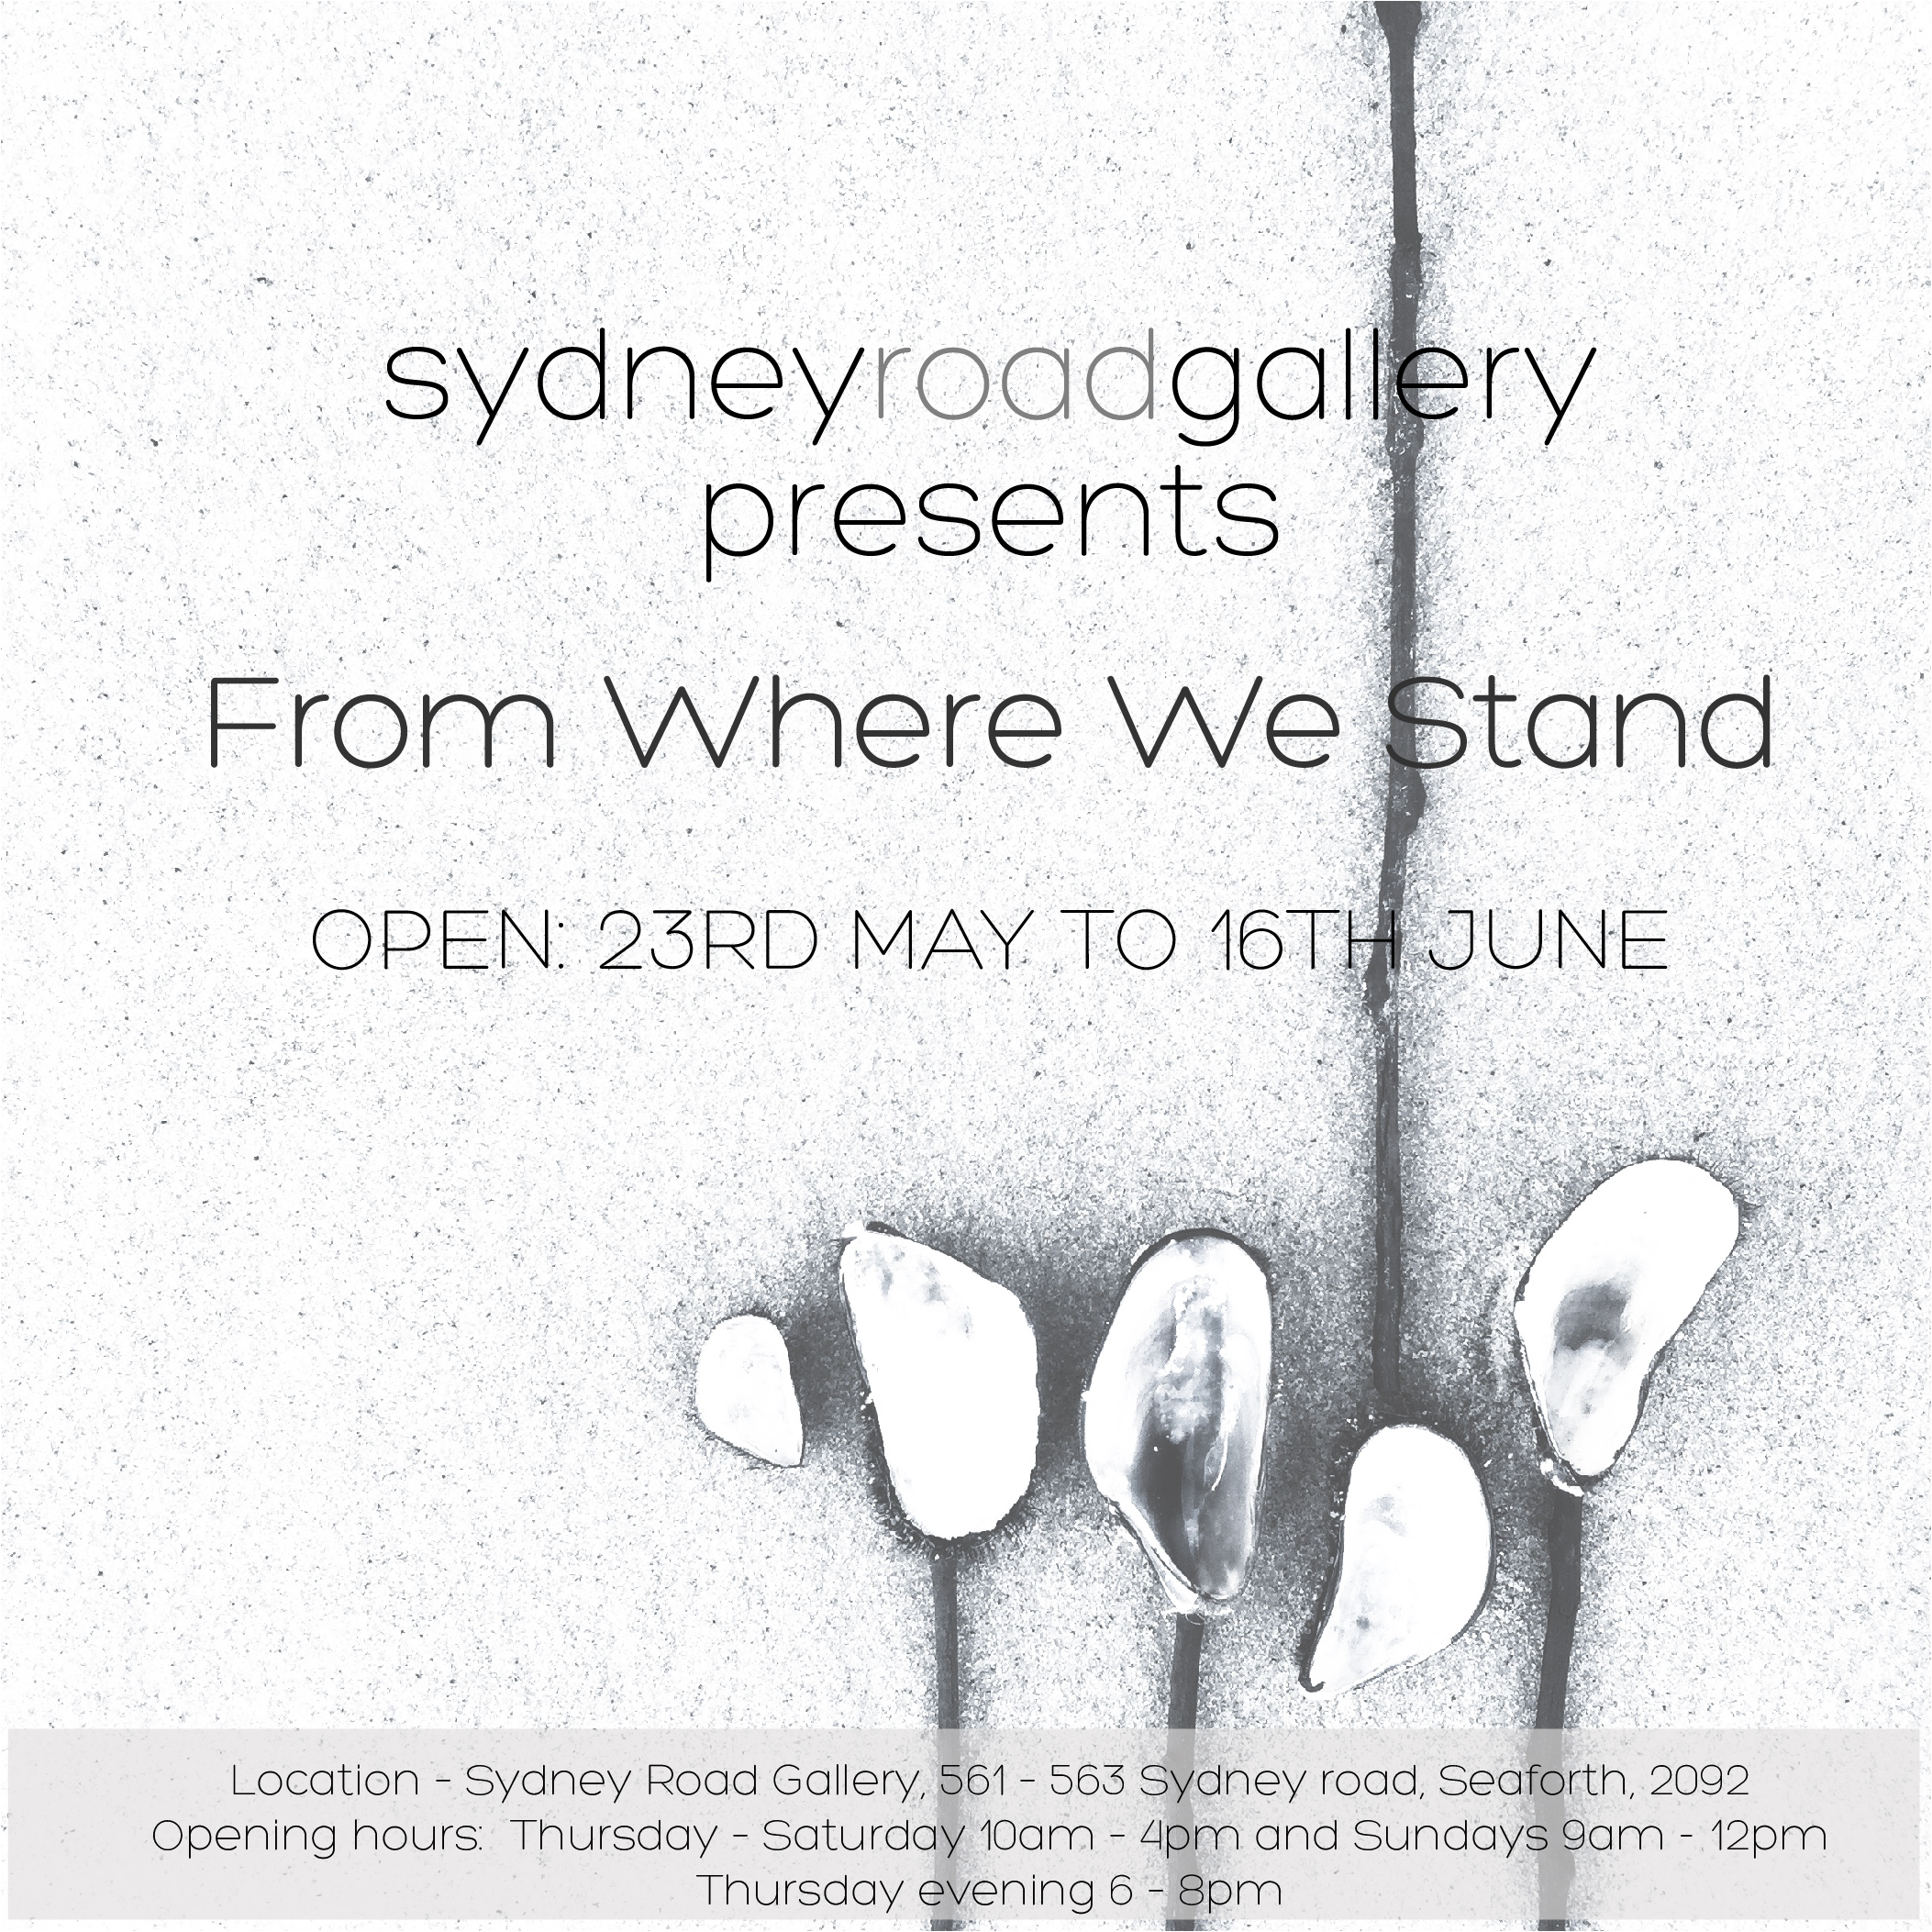 From where we stand - a group exhibition byOPEN: 23RD MAY TO 16TH JUNELocation – Sydney Road Gallery, 561 – 563 Sydney road, Seaforth, 2092opening hours: Thursday – Saturday 10am – 4pm and Sundays 9am - 12pm Thursday evening 6 – 8pm